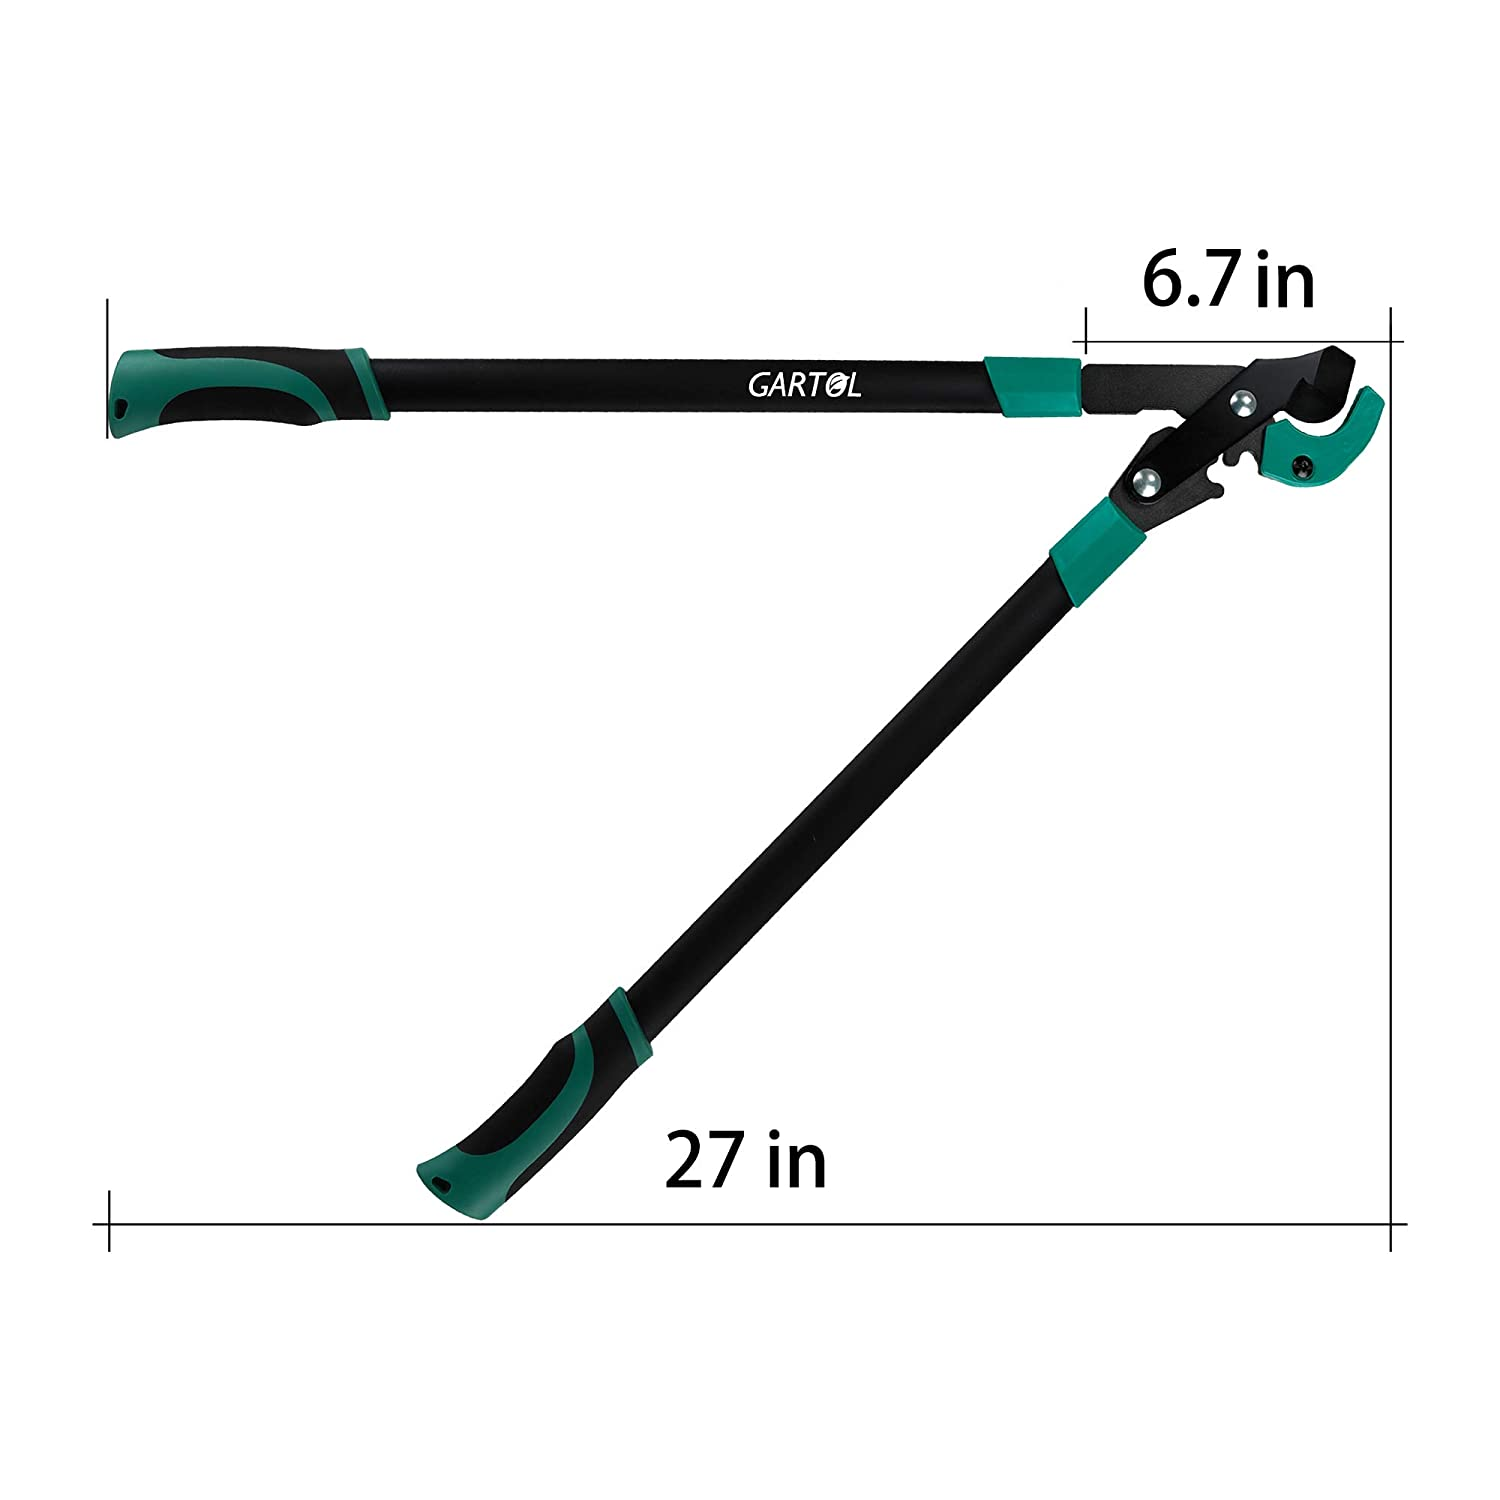 GARTOL Bypass Loppers Heavy Duty-27 Inch Anvil Lopper Garden Tree Branch Cutter, with Rachet Wheel Design,High-Carbon Steel Blade,Sturdy Thickened Iron Tube Handle